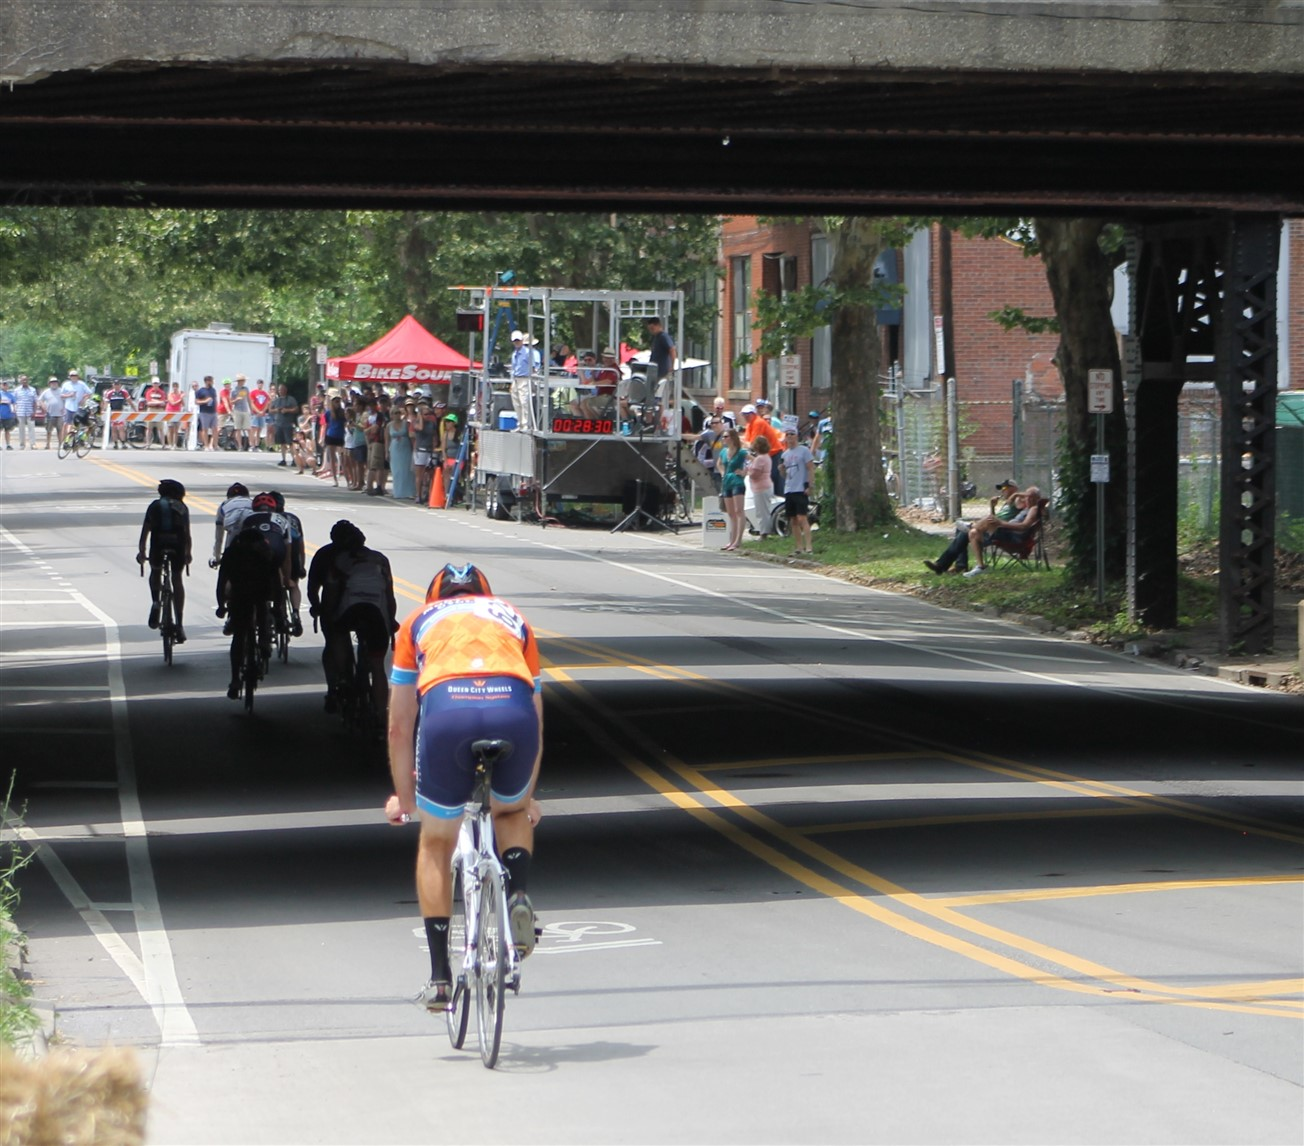 2015 06 07 106 Franklinton Bike Races.jpg